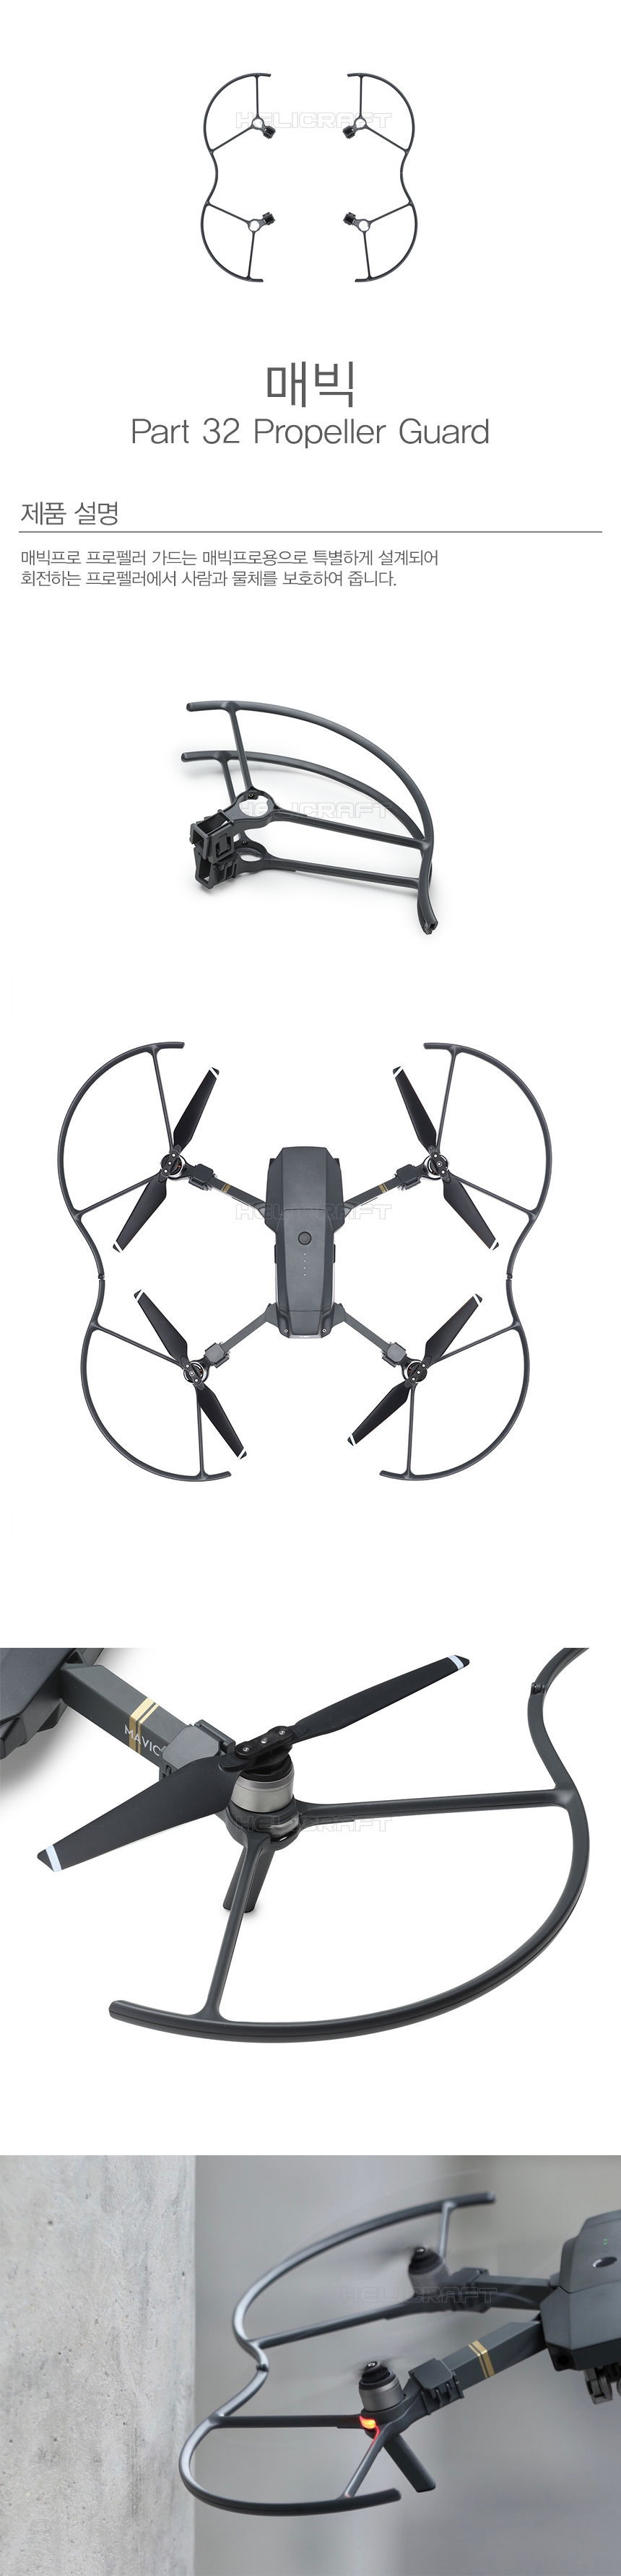 DJI 매빅 프로펠러 가드 Mavic propeller Guards